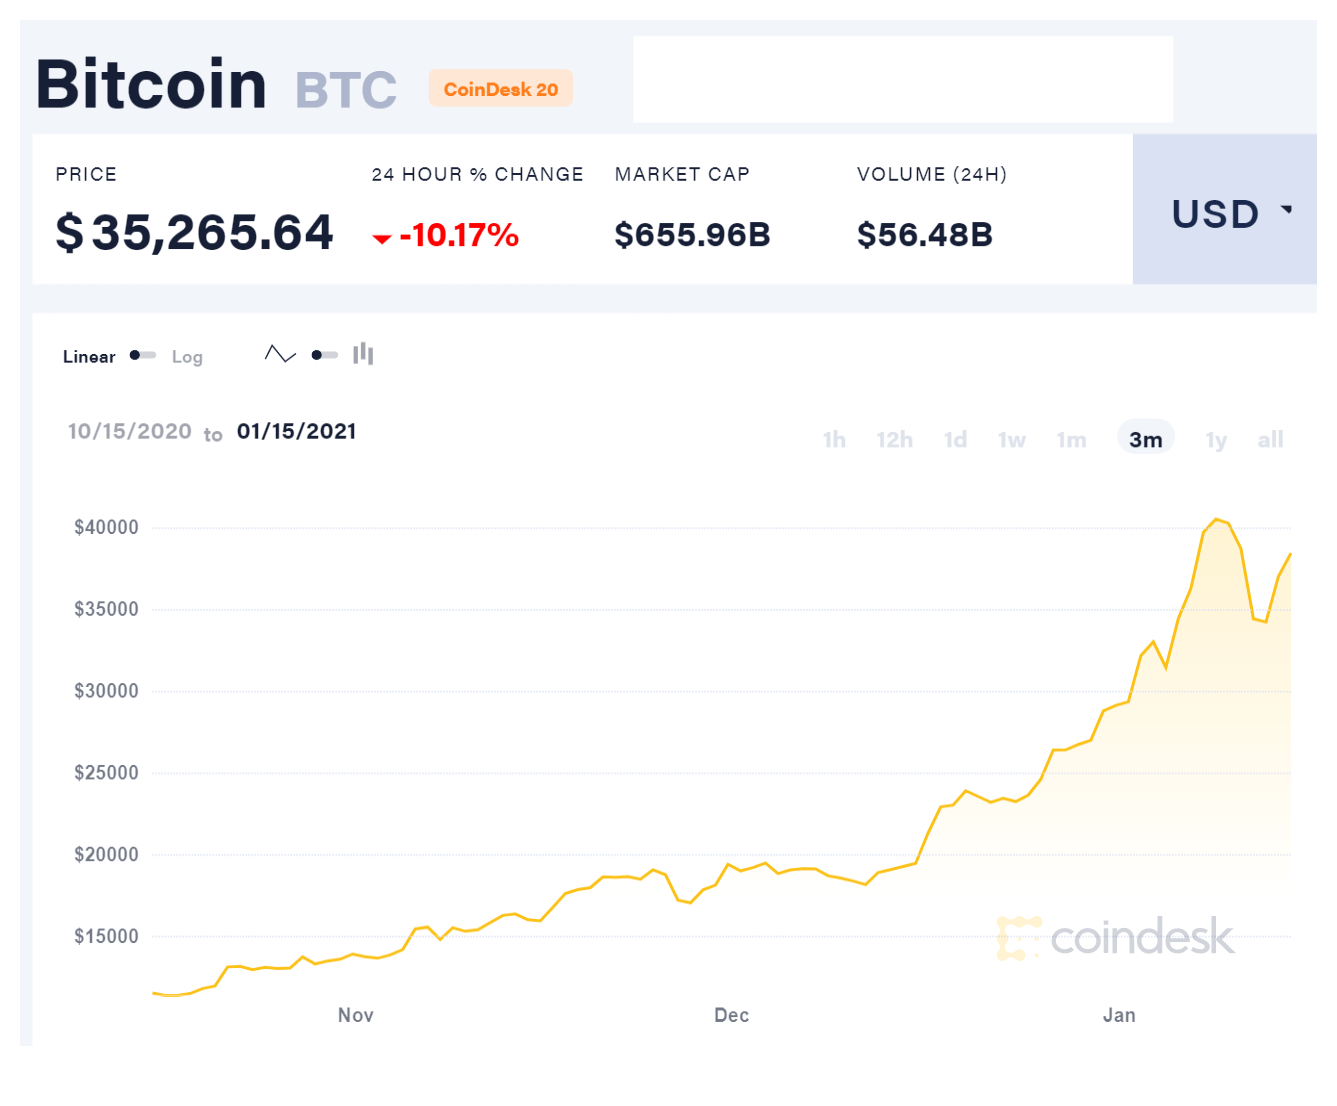 line graph of bitcoin's price from november 2020 to january 2021